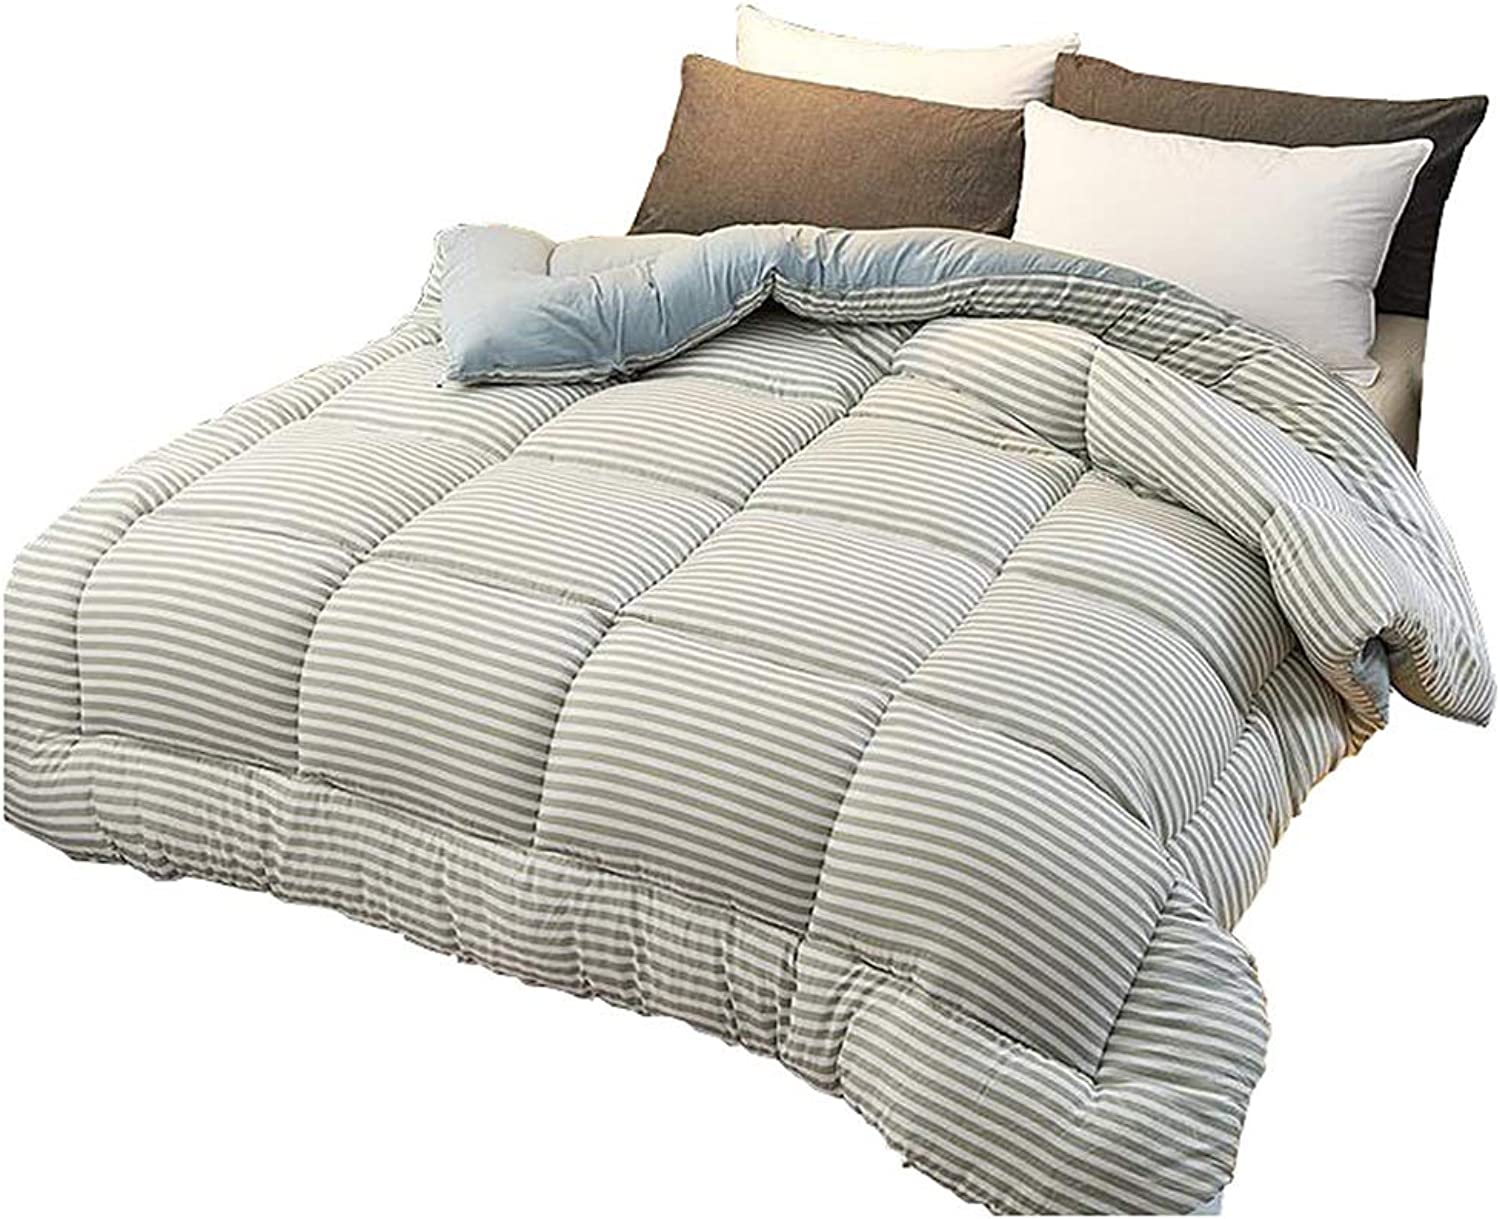 Quilt Thicken Warm and Soft for All Season All-Season Quilted Comforte Rhypoallergenic Quilted Comforter with Corner Tabs (Size   150cmx200cm3kg)